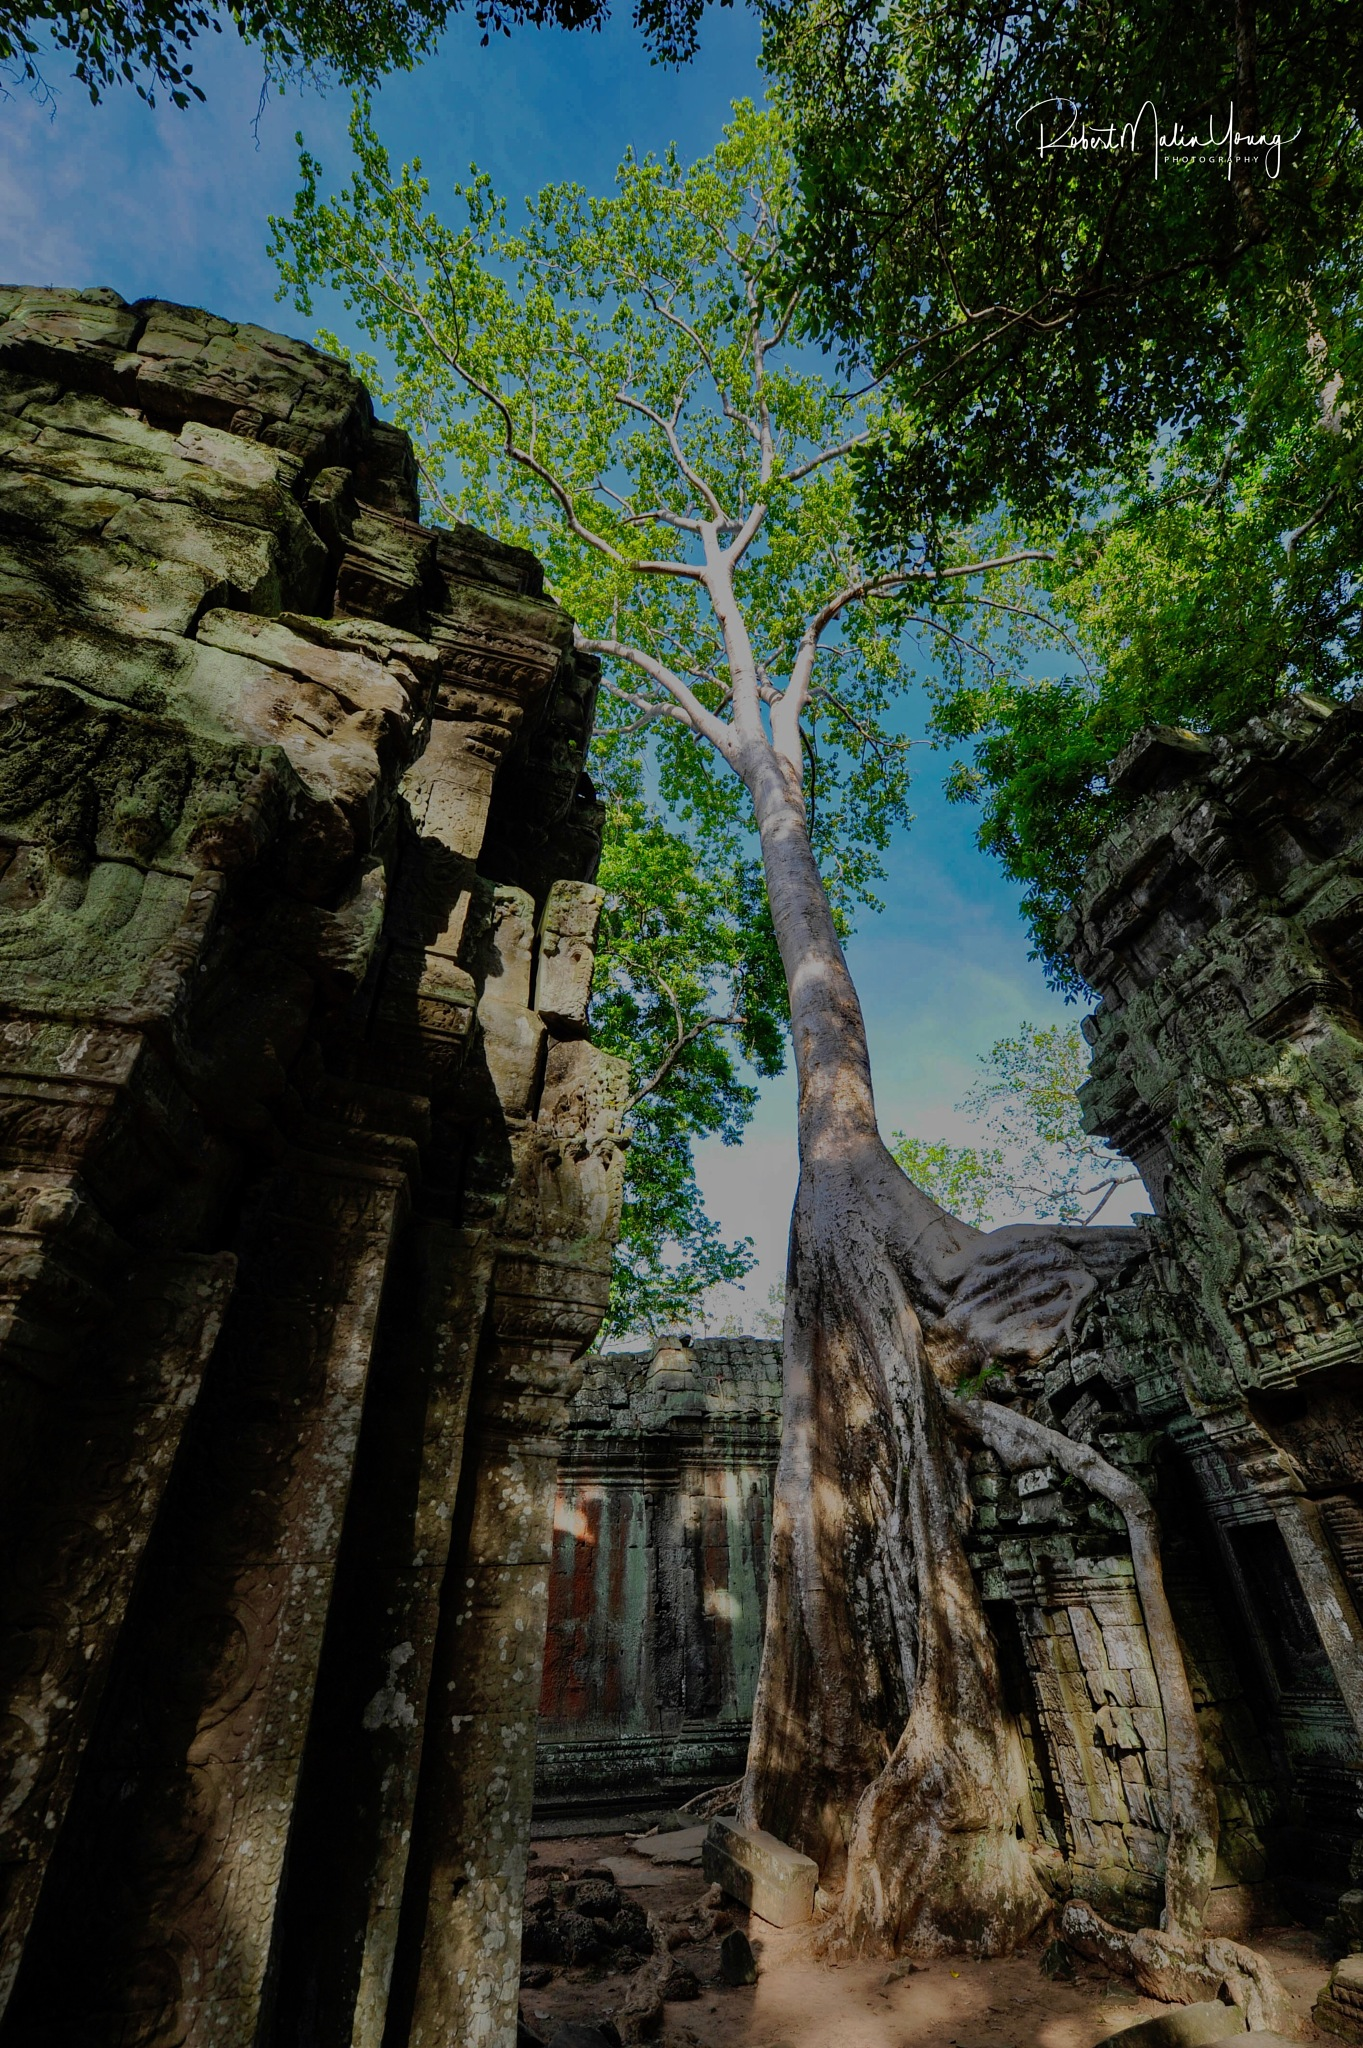 Return to SE Asia - 2018 by Robert Malin Young